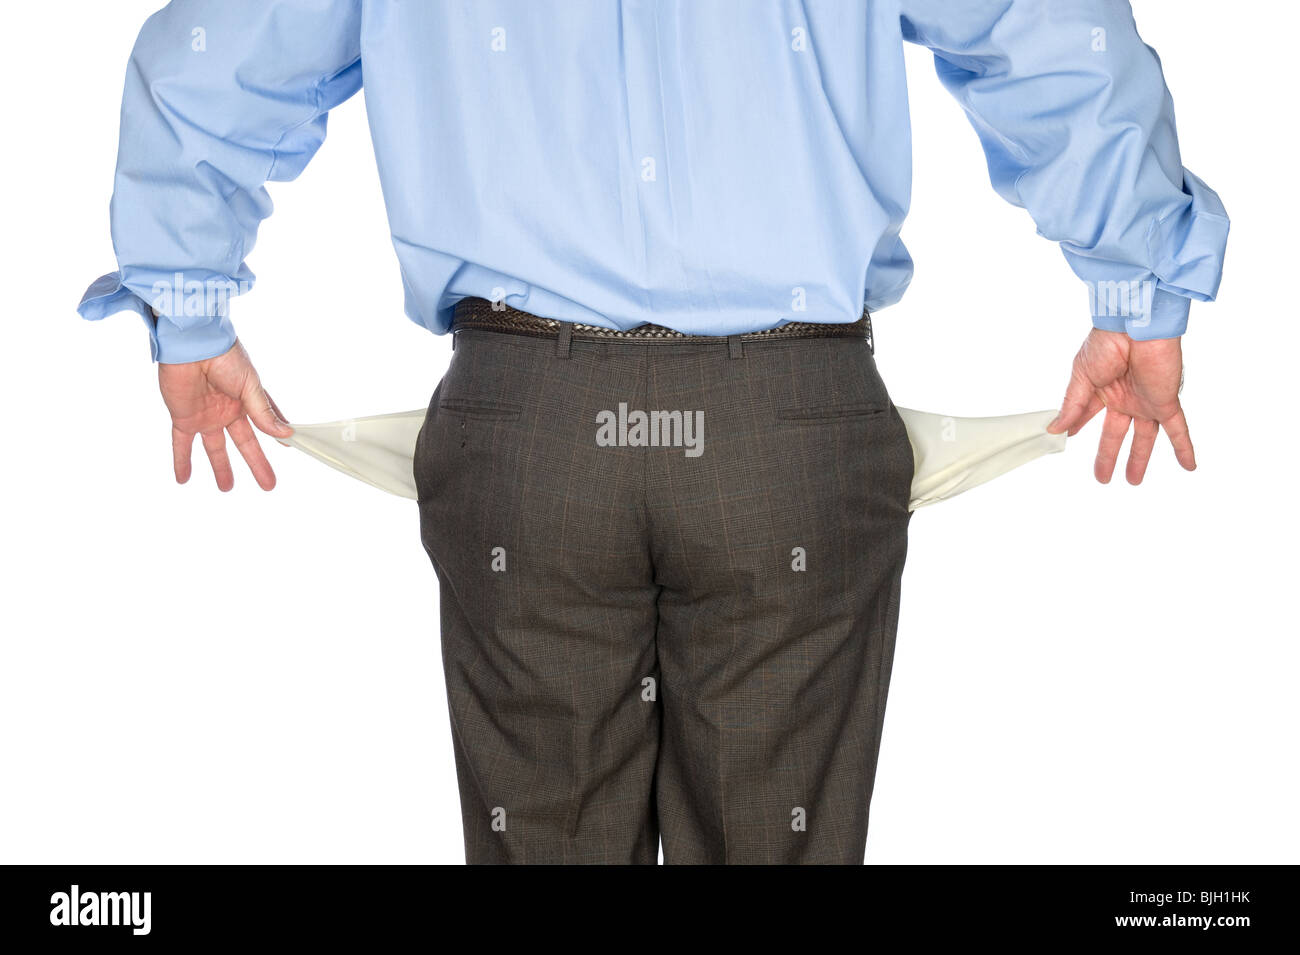 A businessman holds out his empty pockets showing he is broke and has no cash. - Stock Image